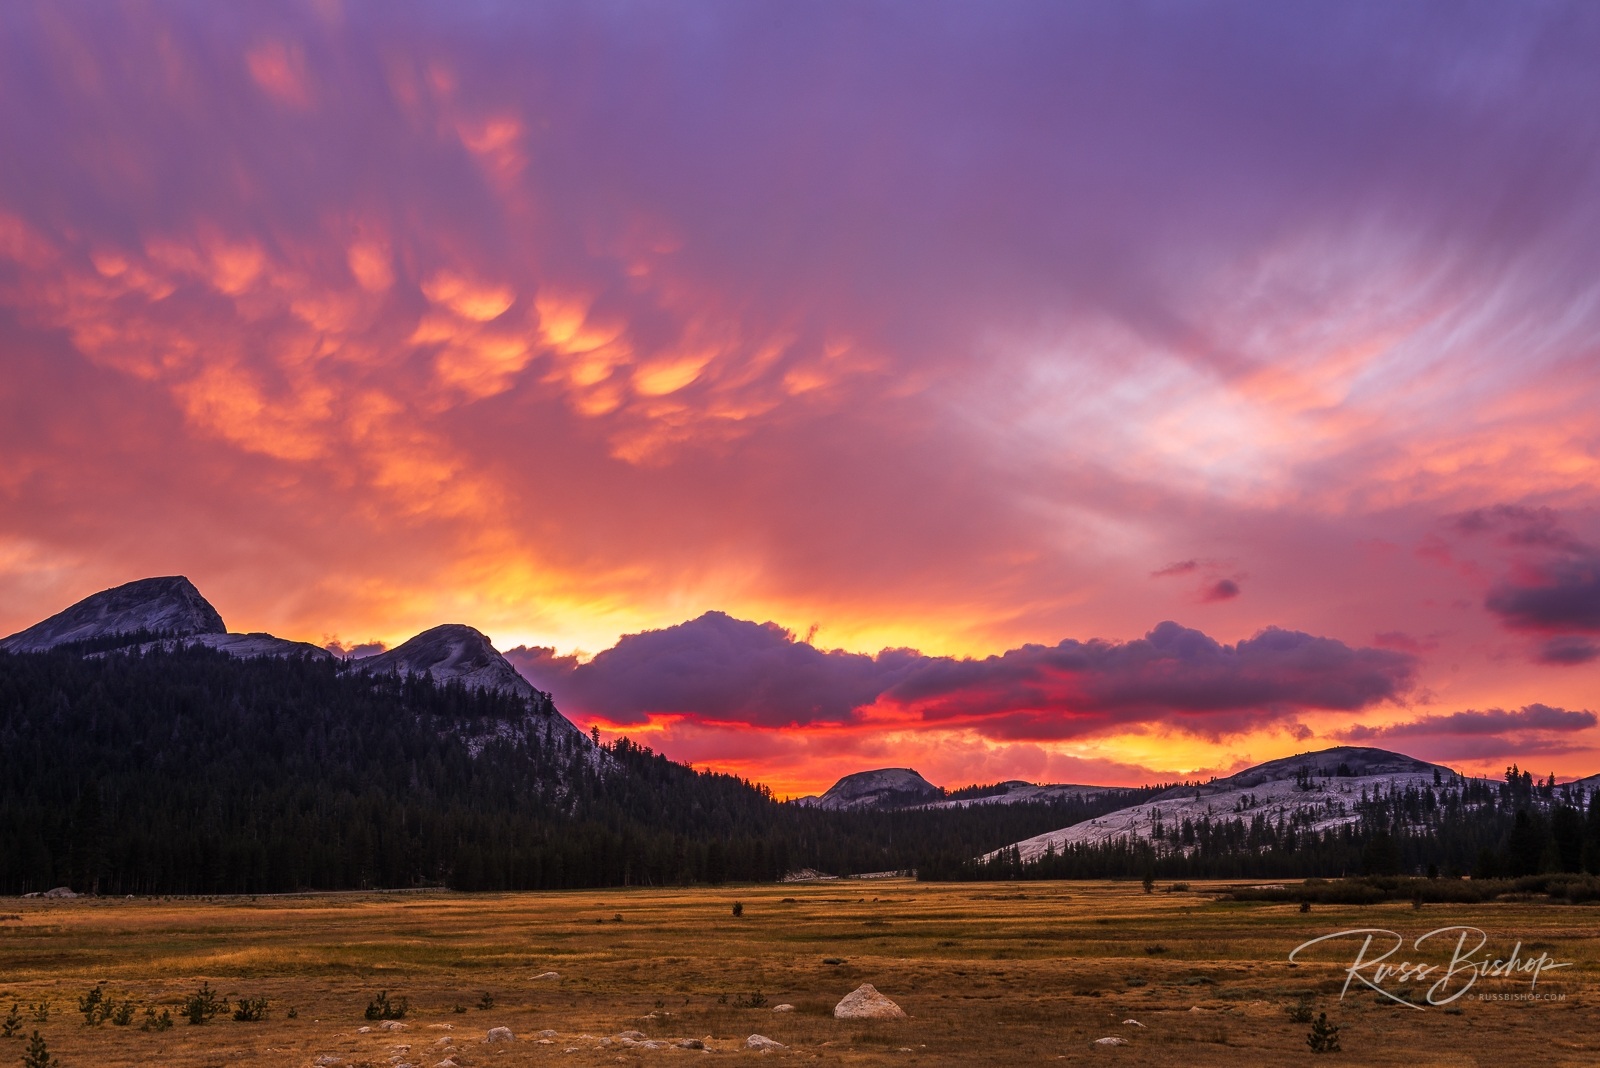 Sunset over Tuolumne Meadows, Yosemite National Park, California